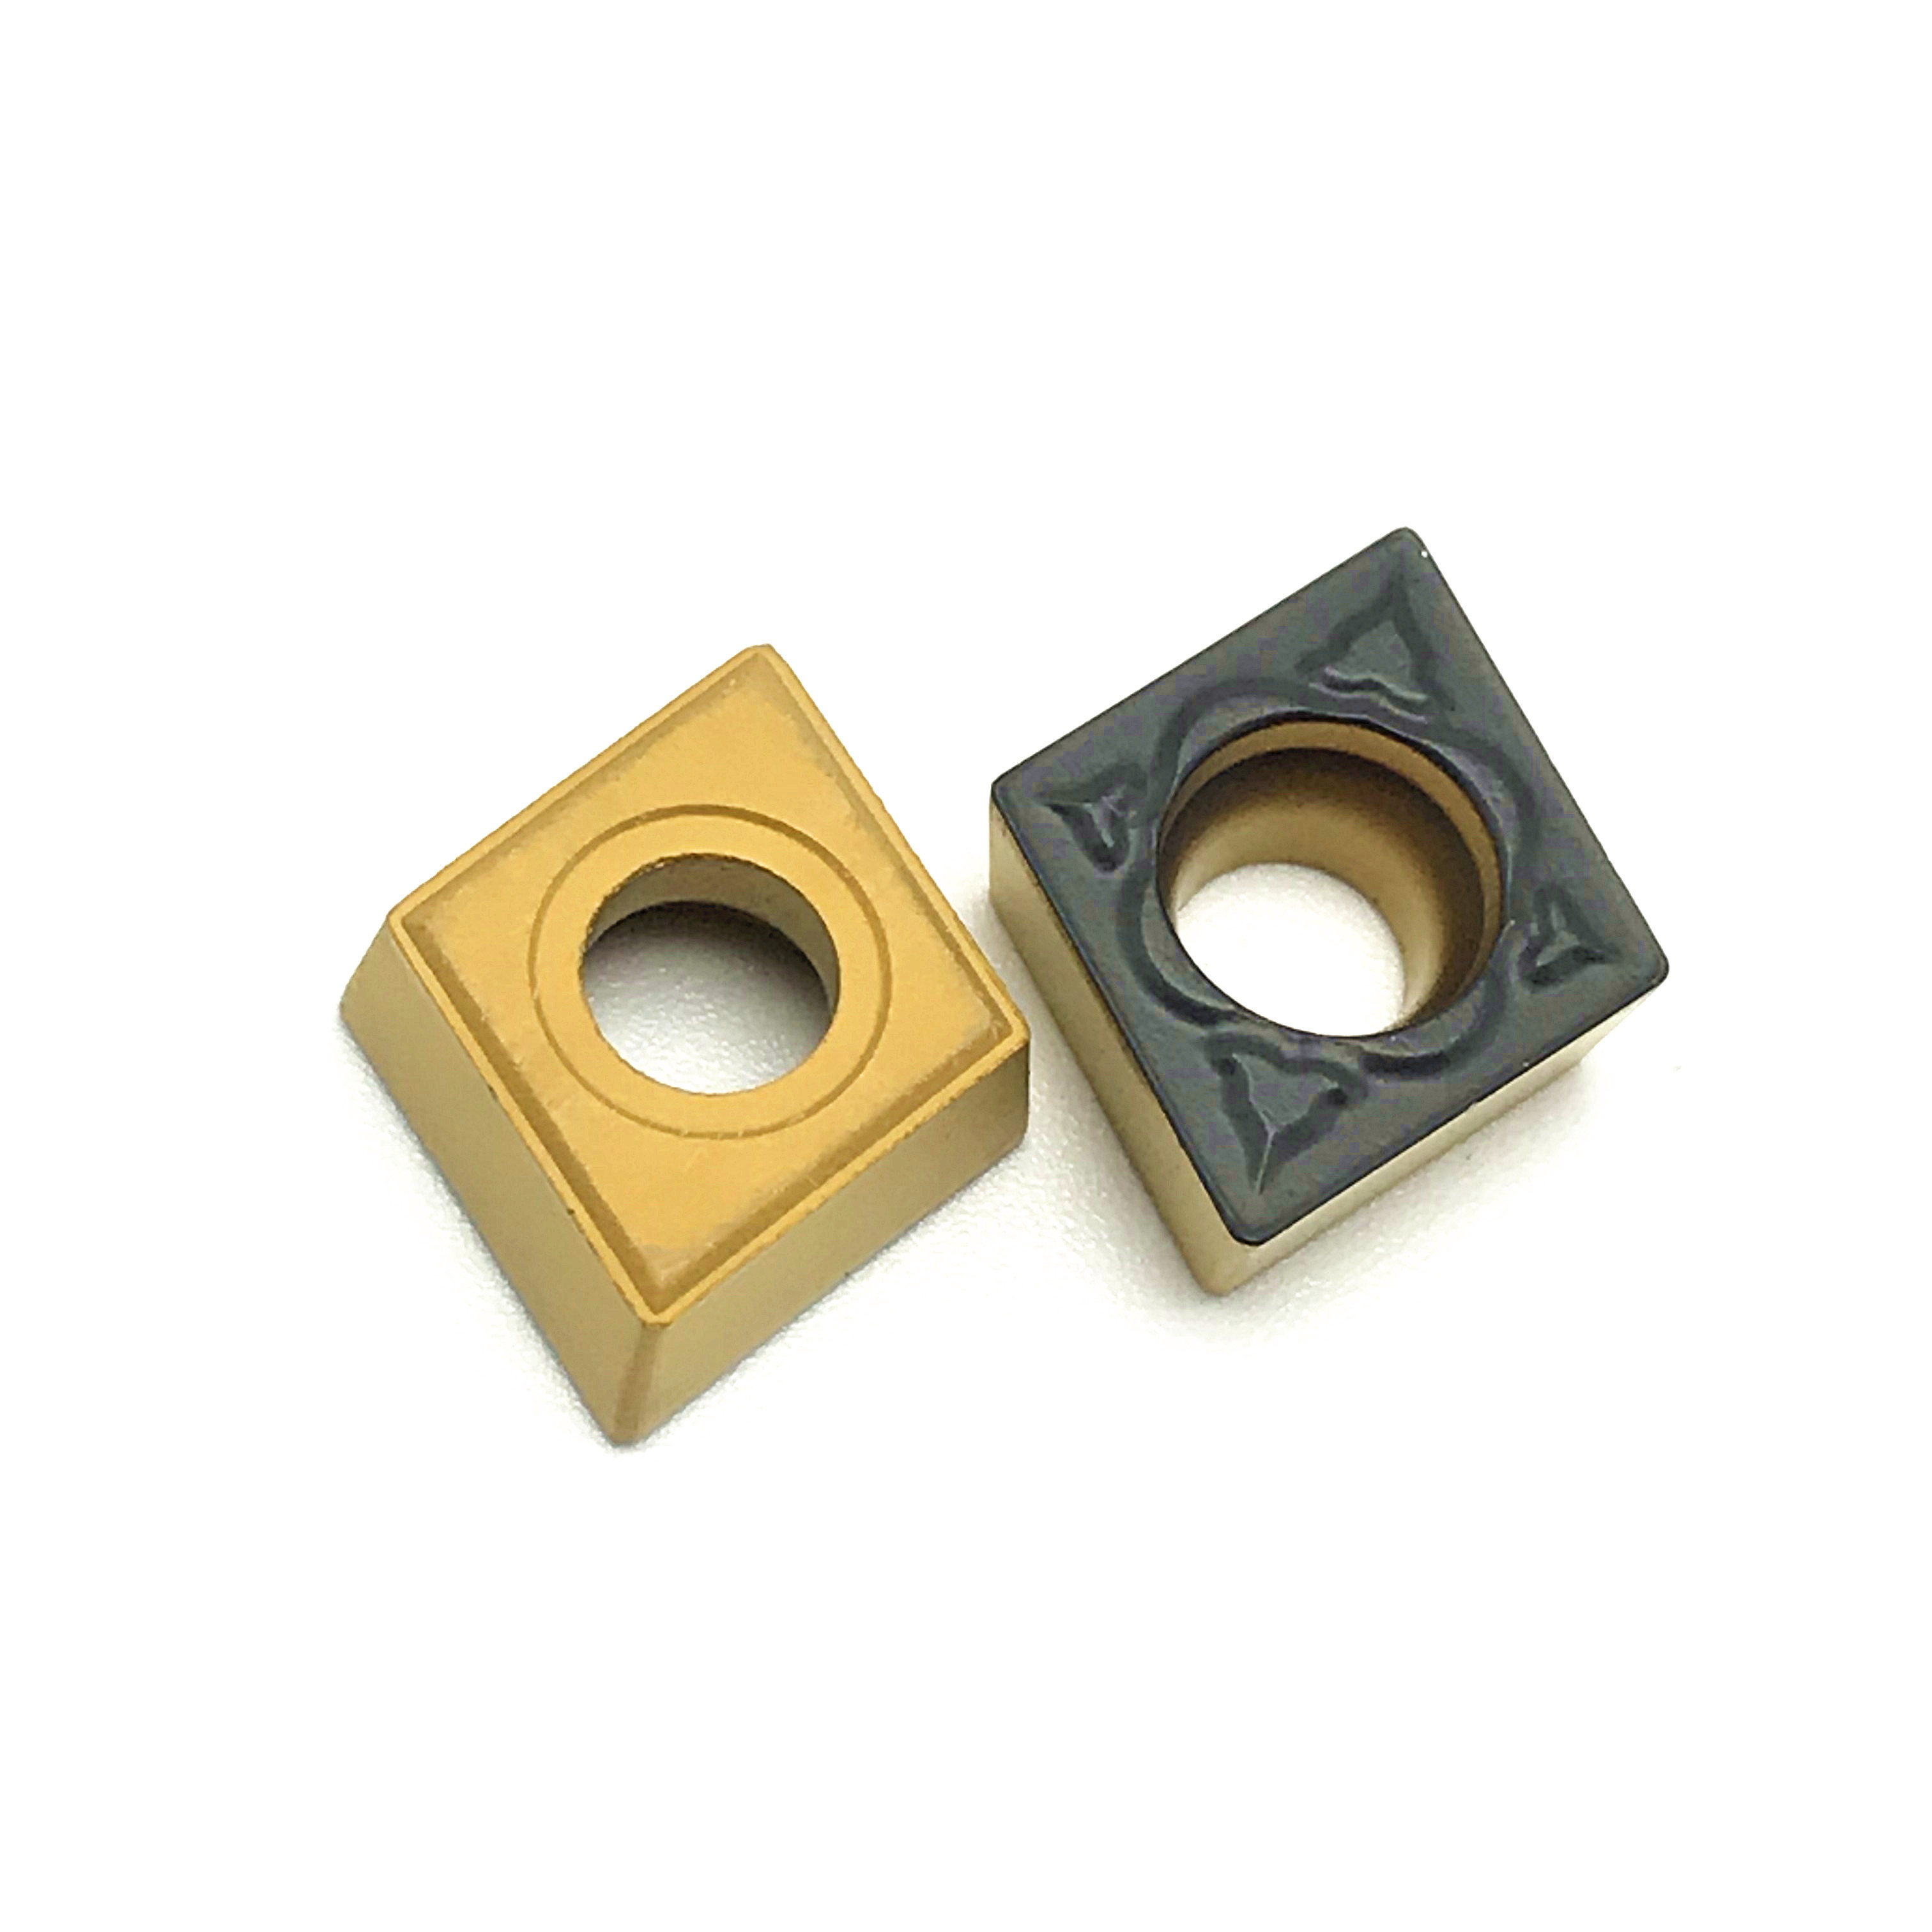 3 2 1 10PCS CCMT09T304 PM 4225 Internal Turning Tools ccmt 3(2.5)1 pm Carbide insert High quality Lathe cutter Tool turning insert (4)